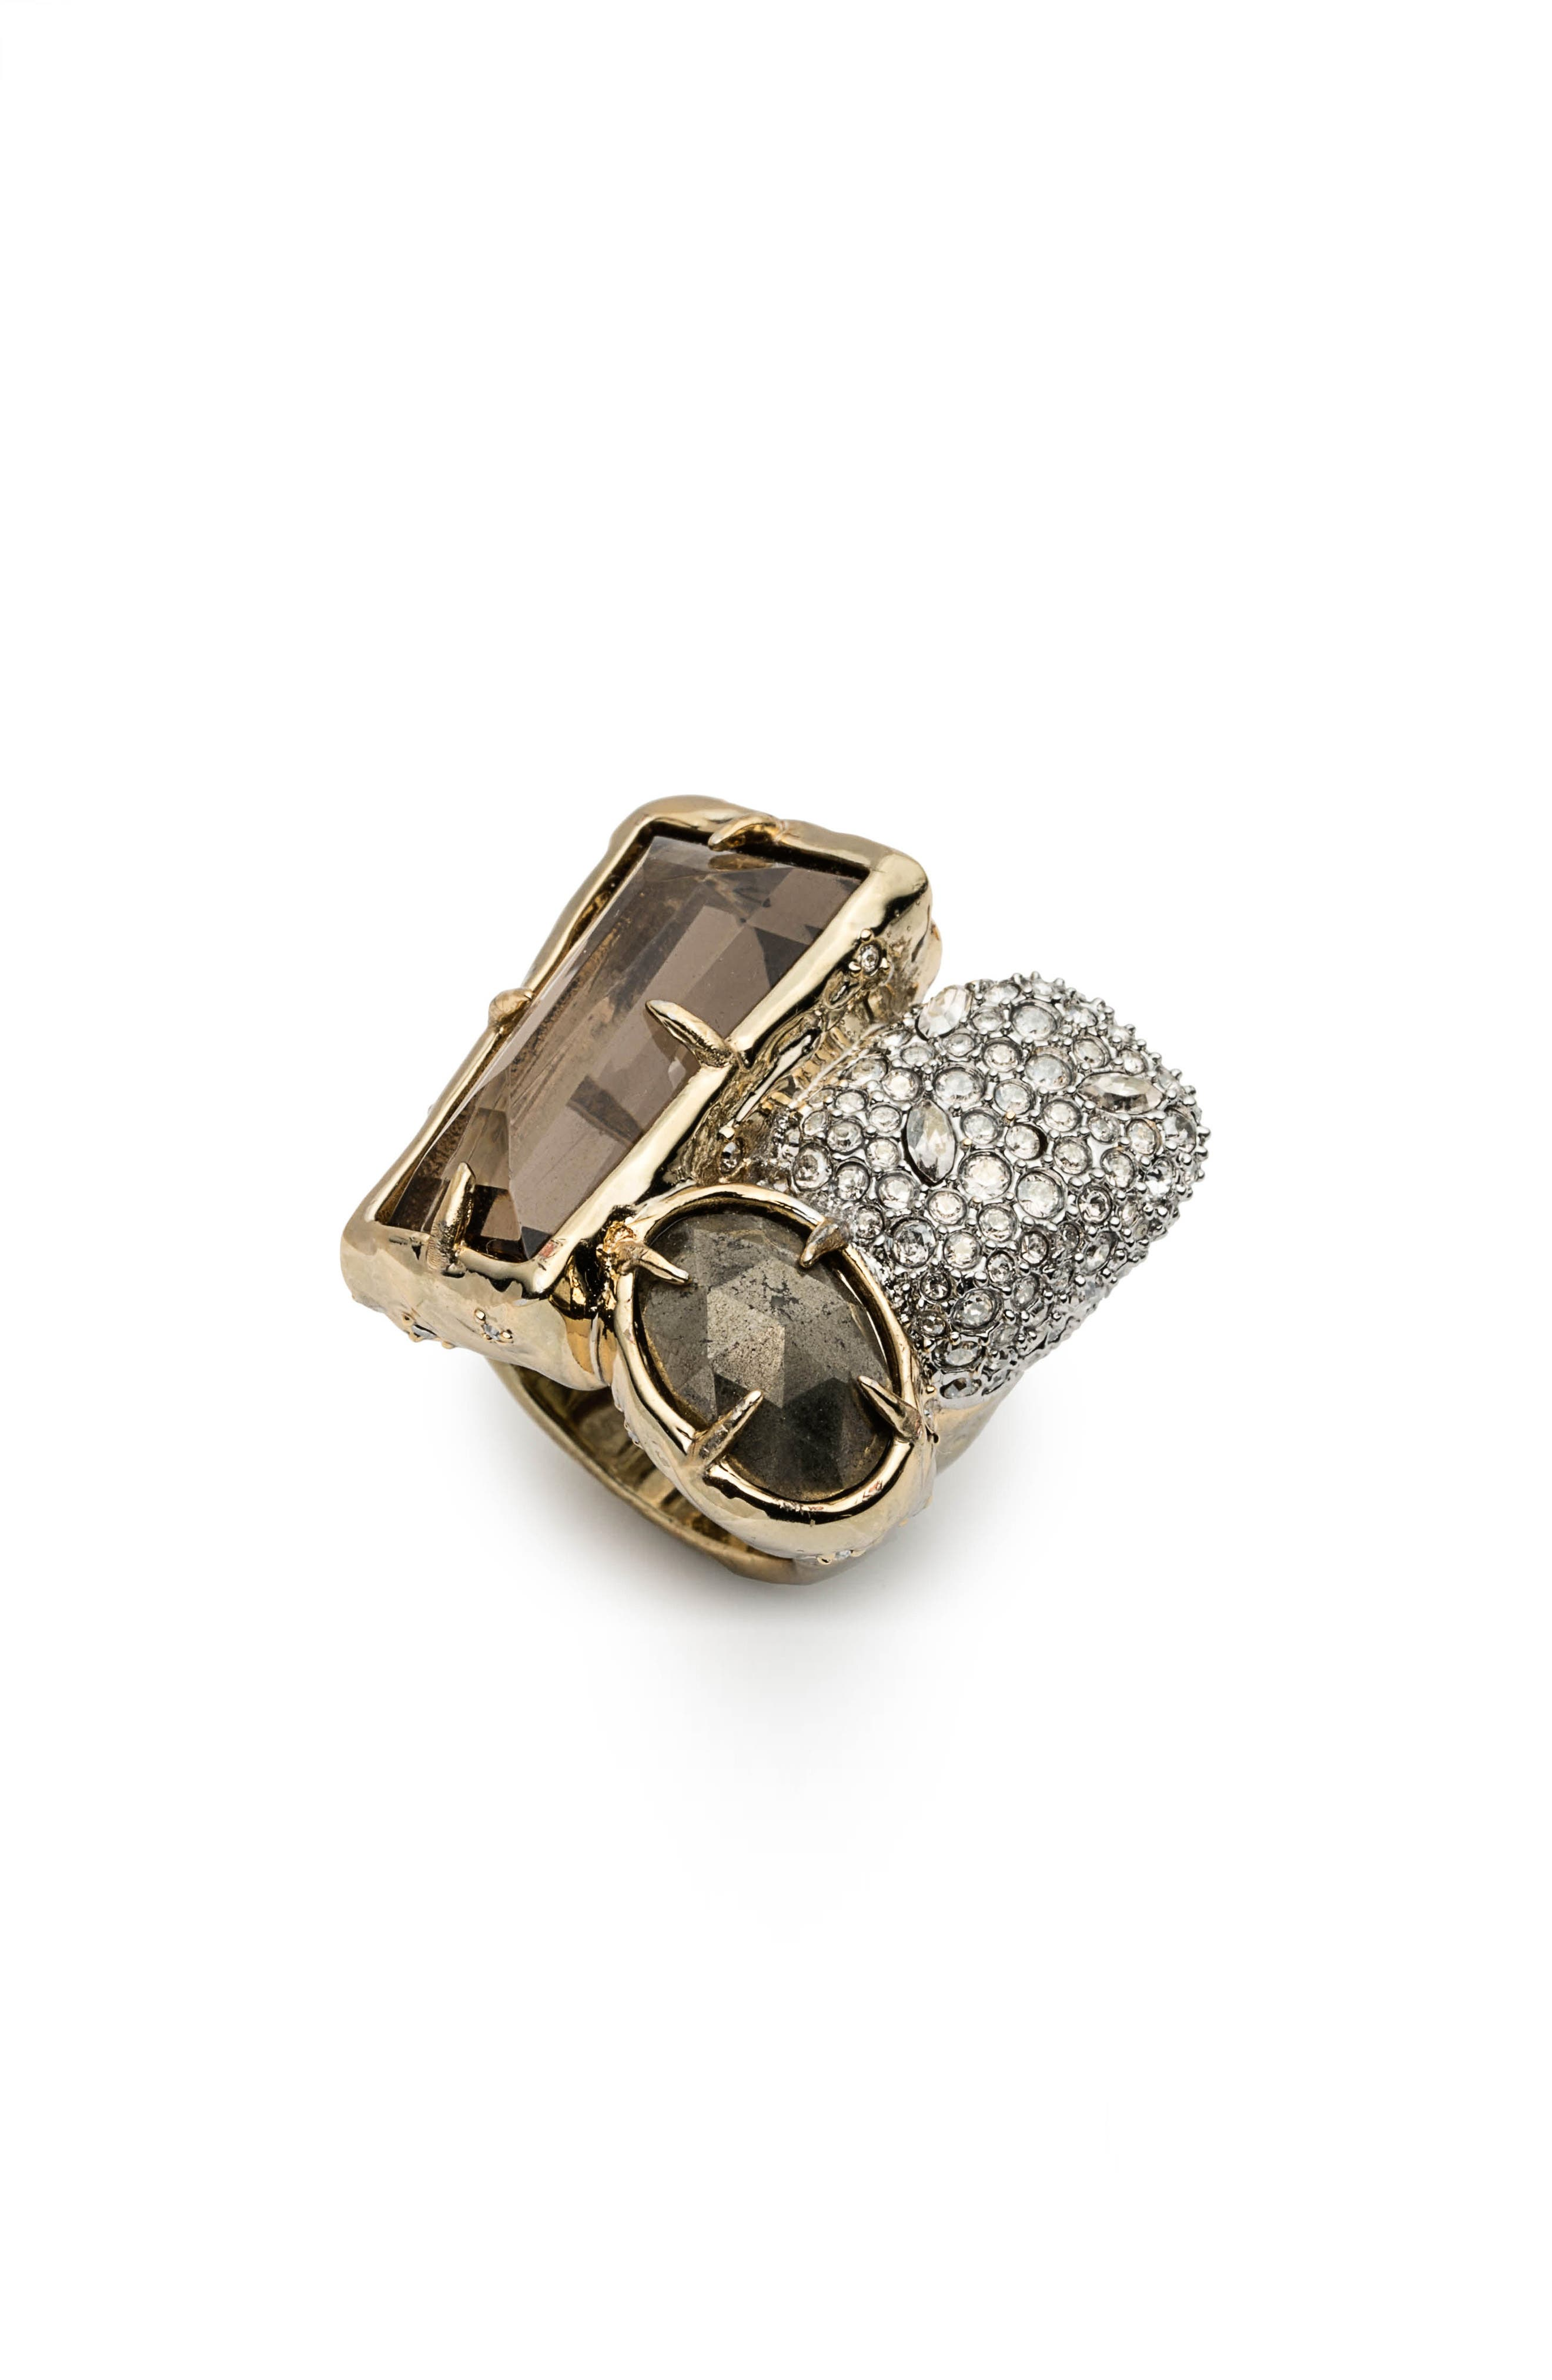 Elements Crystal Statement Ring,                             Main thumbnail 1, color,                             710